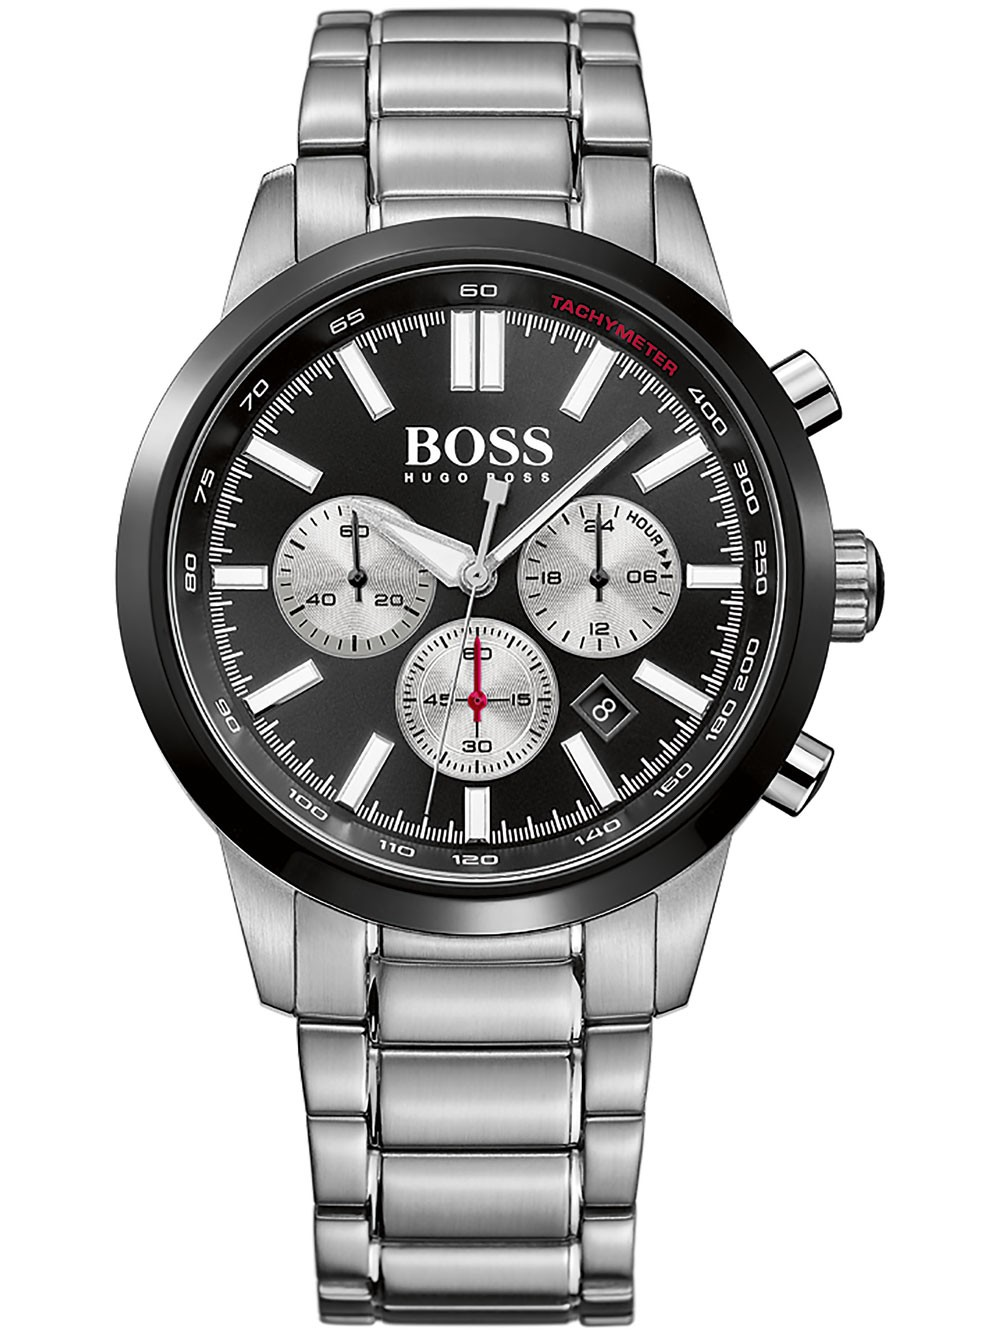 watches chrono12 hugo boss 1513189 racing chrono. Black Bedroom Furniture Sets. Home Design Ideas